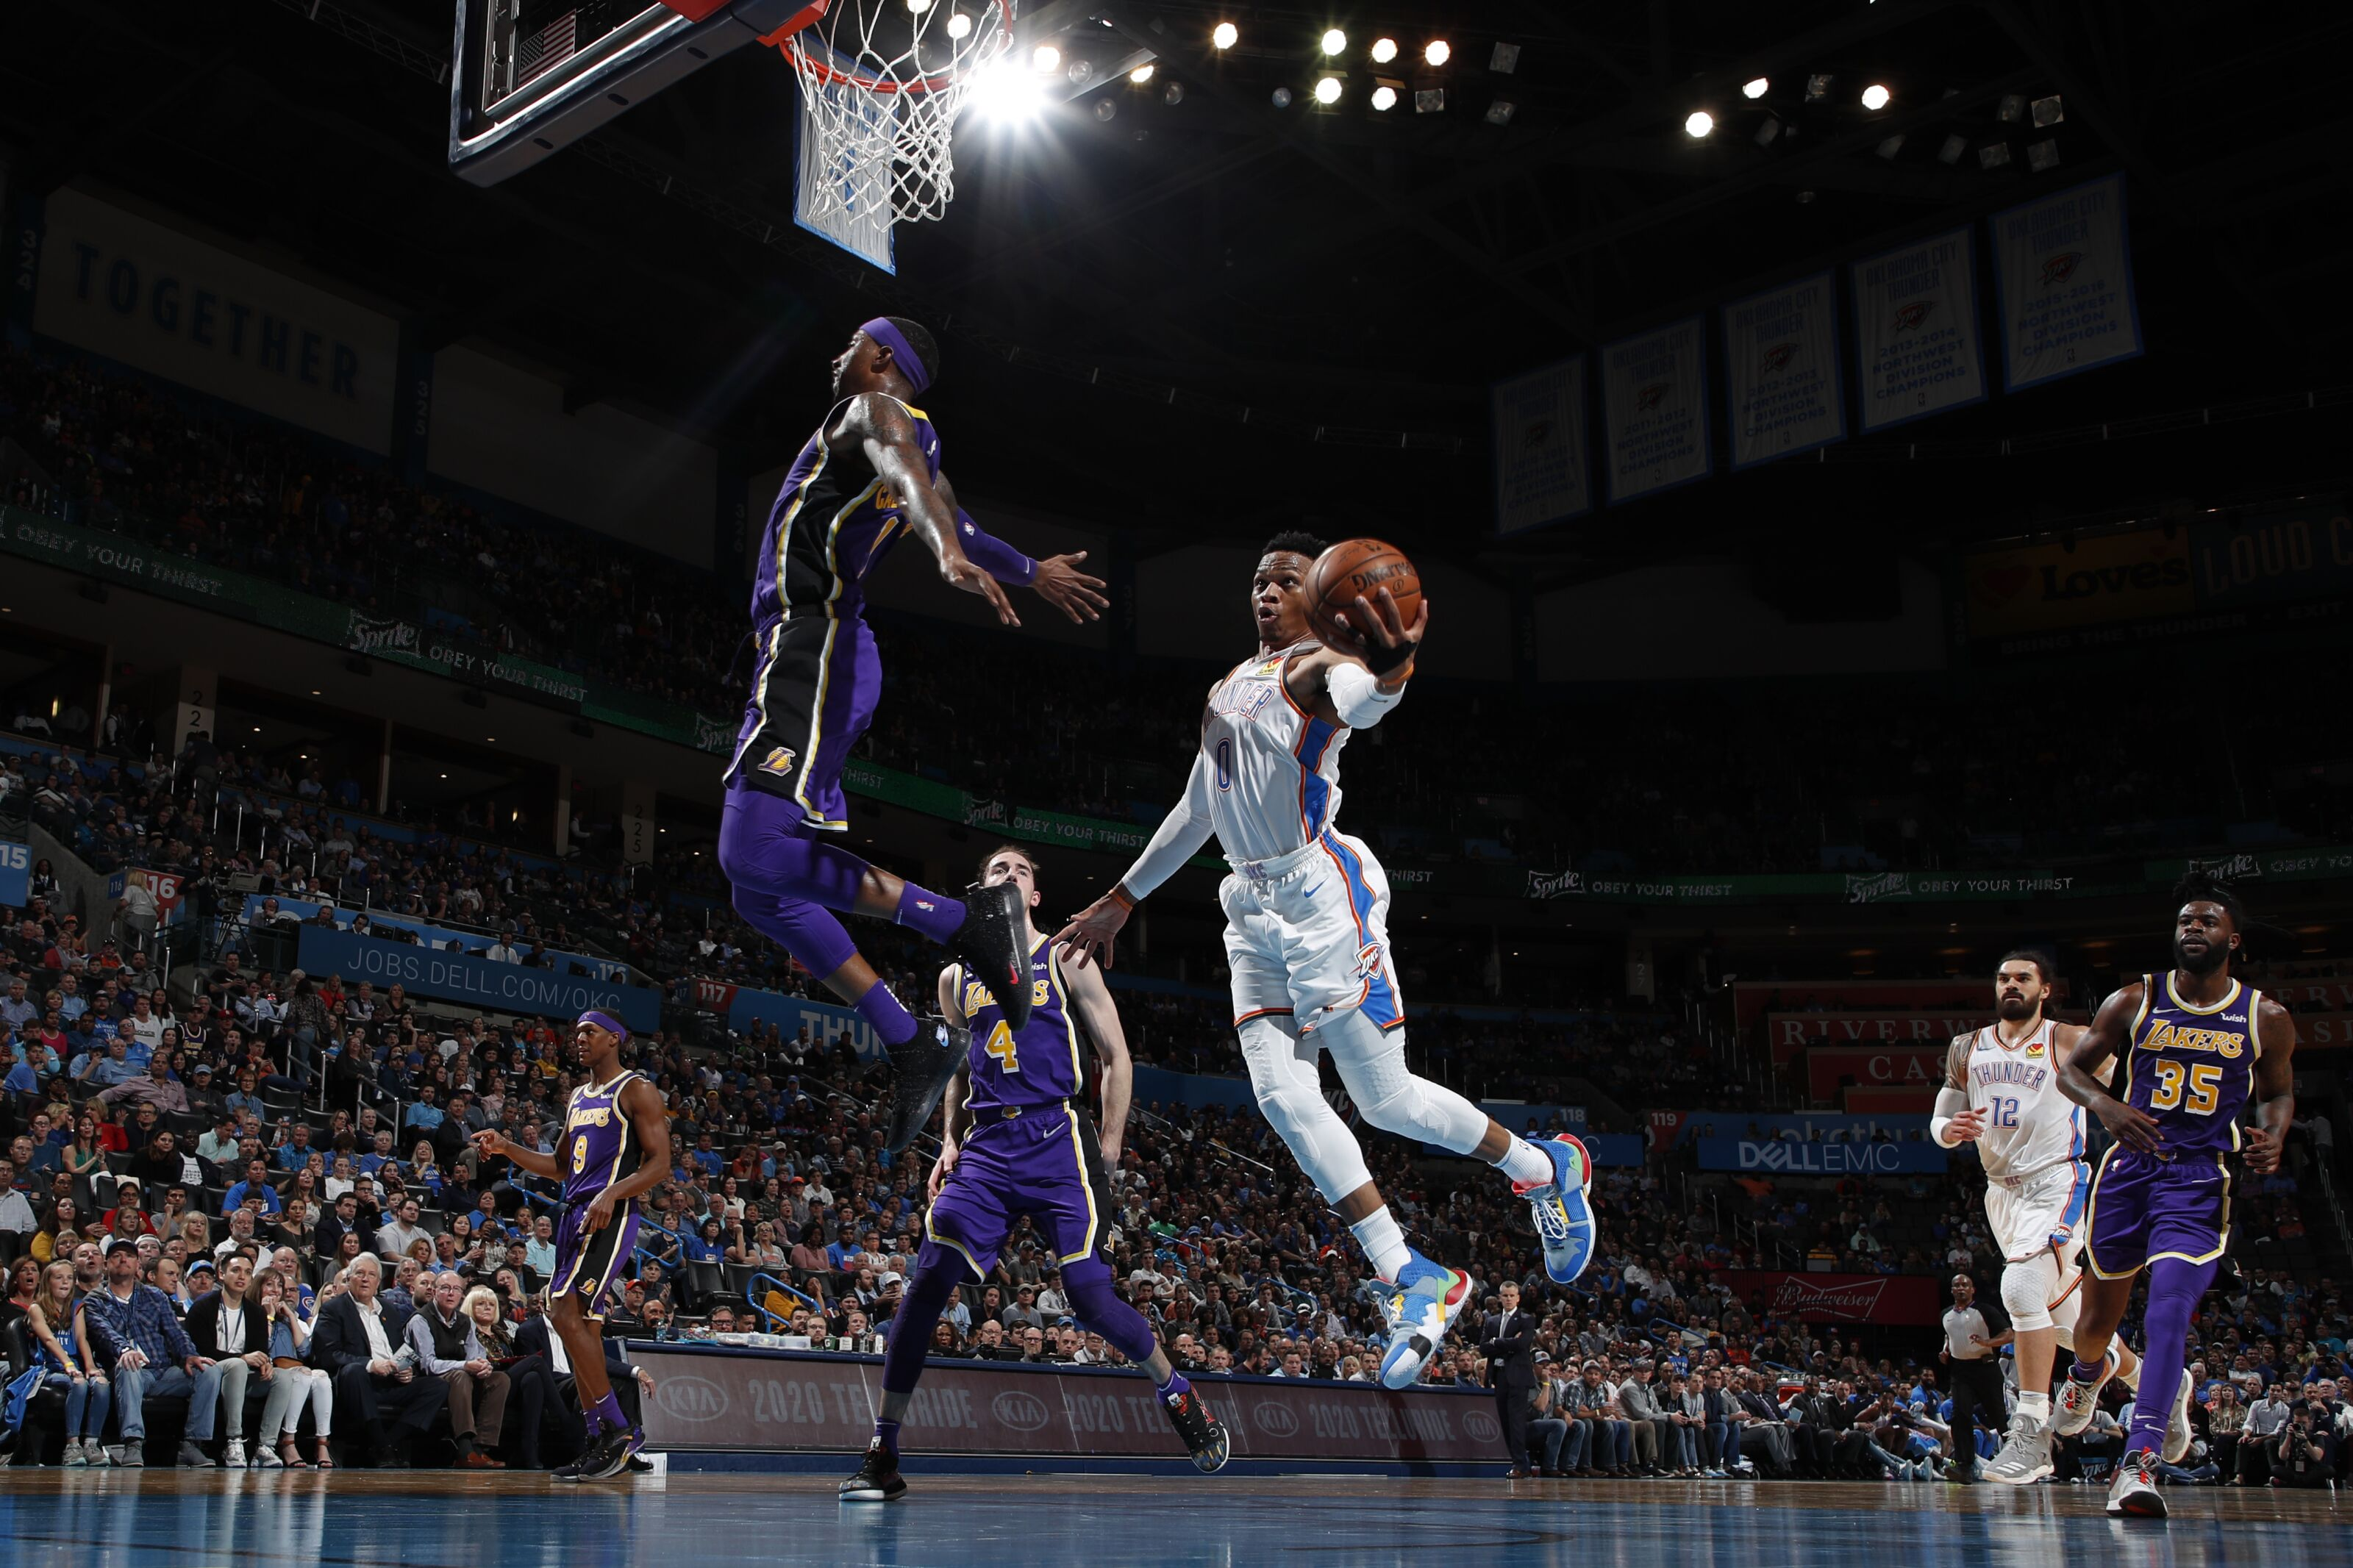 Los Angeles Lakers lose as Russell Westbrook has a historic